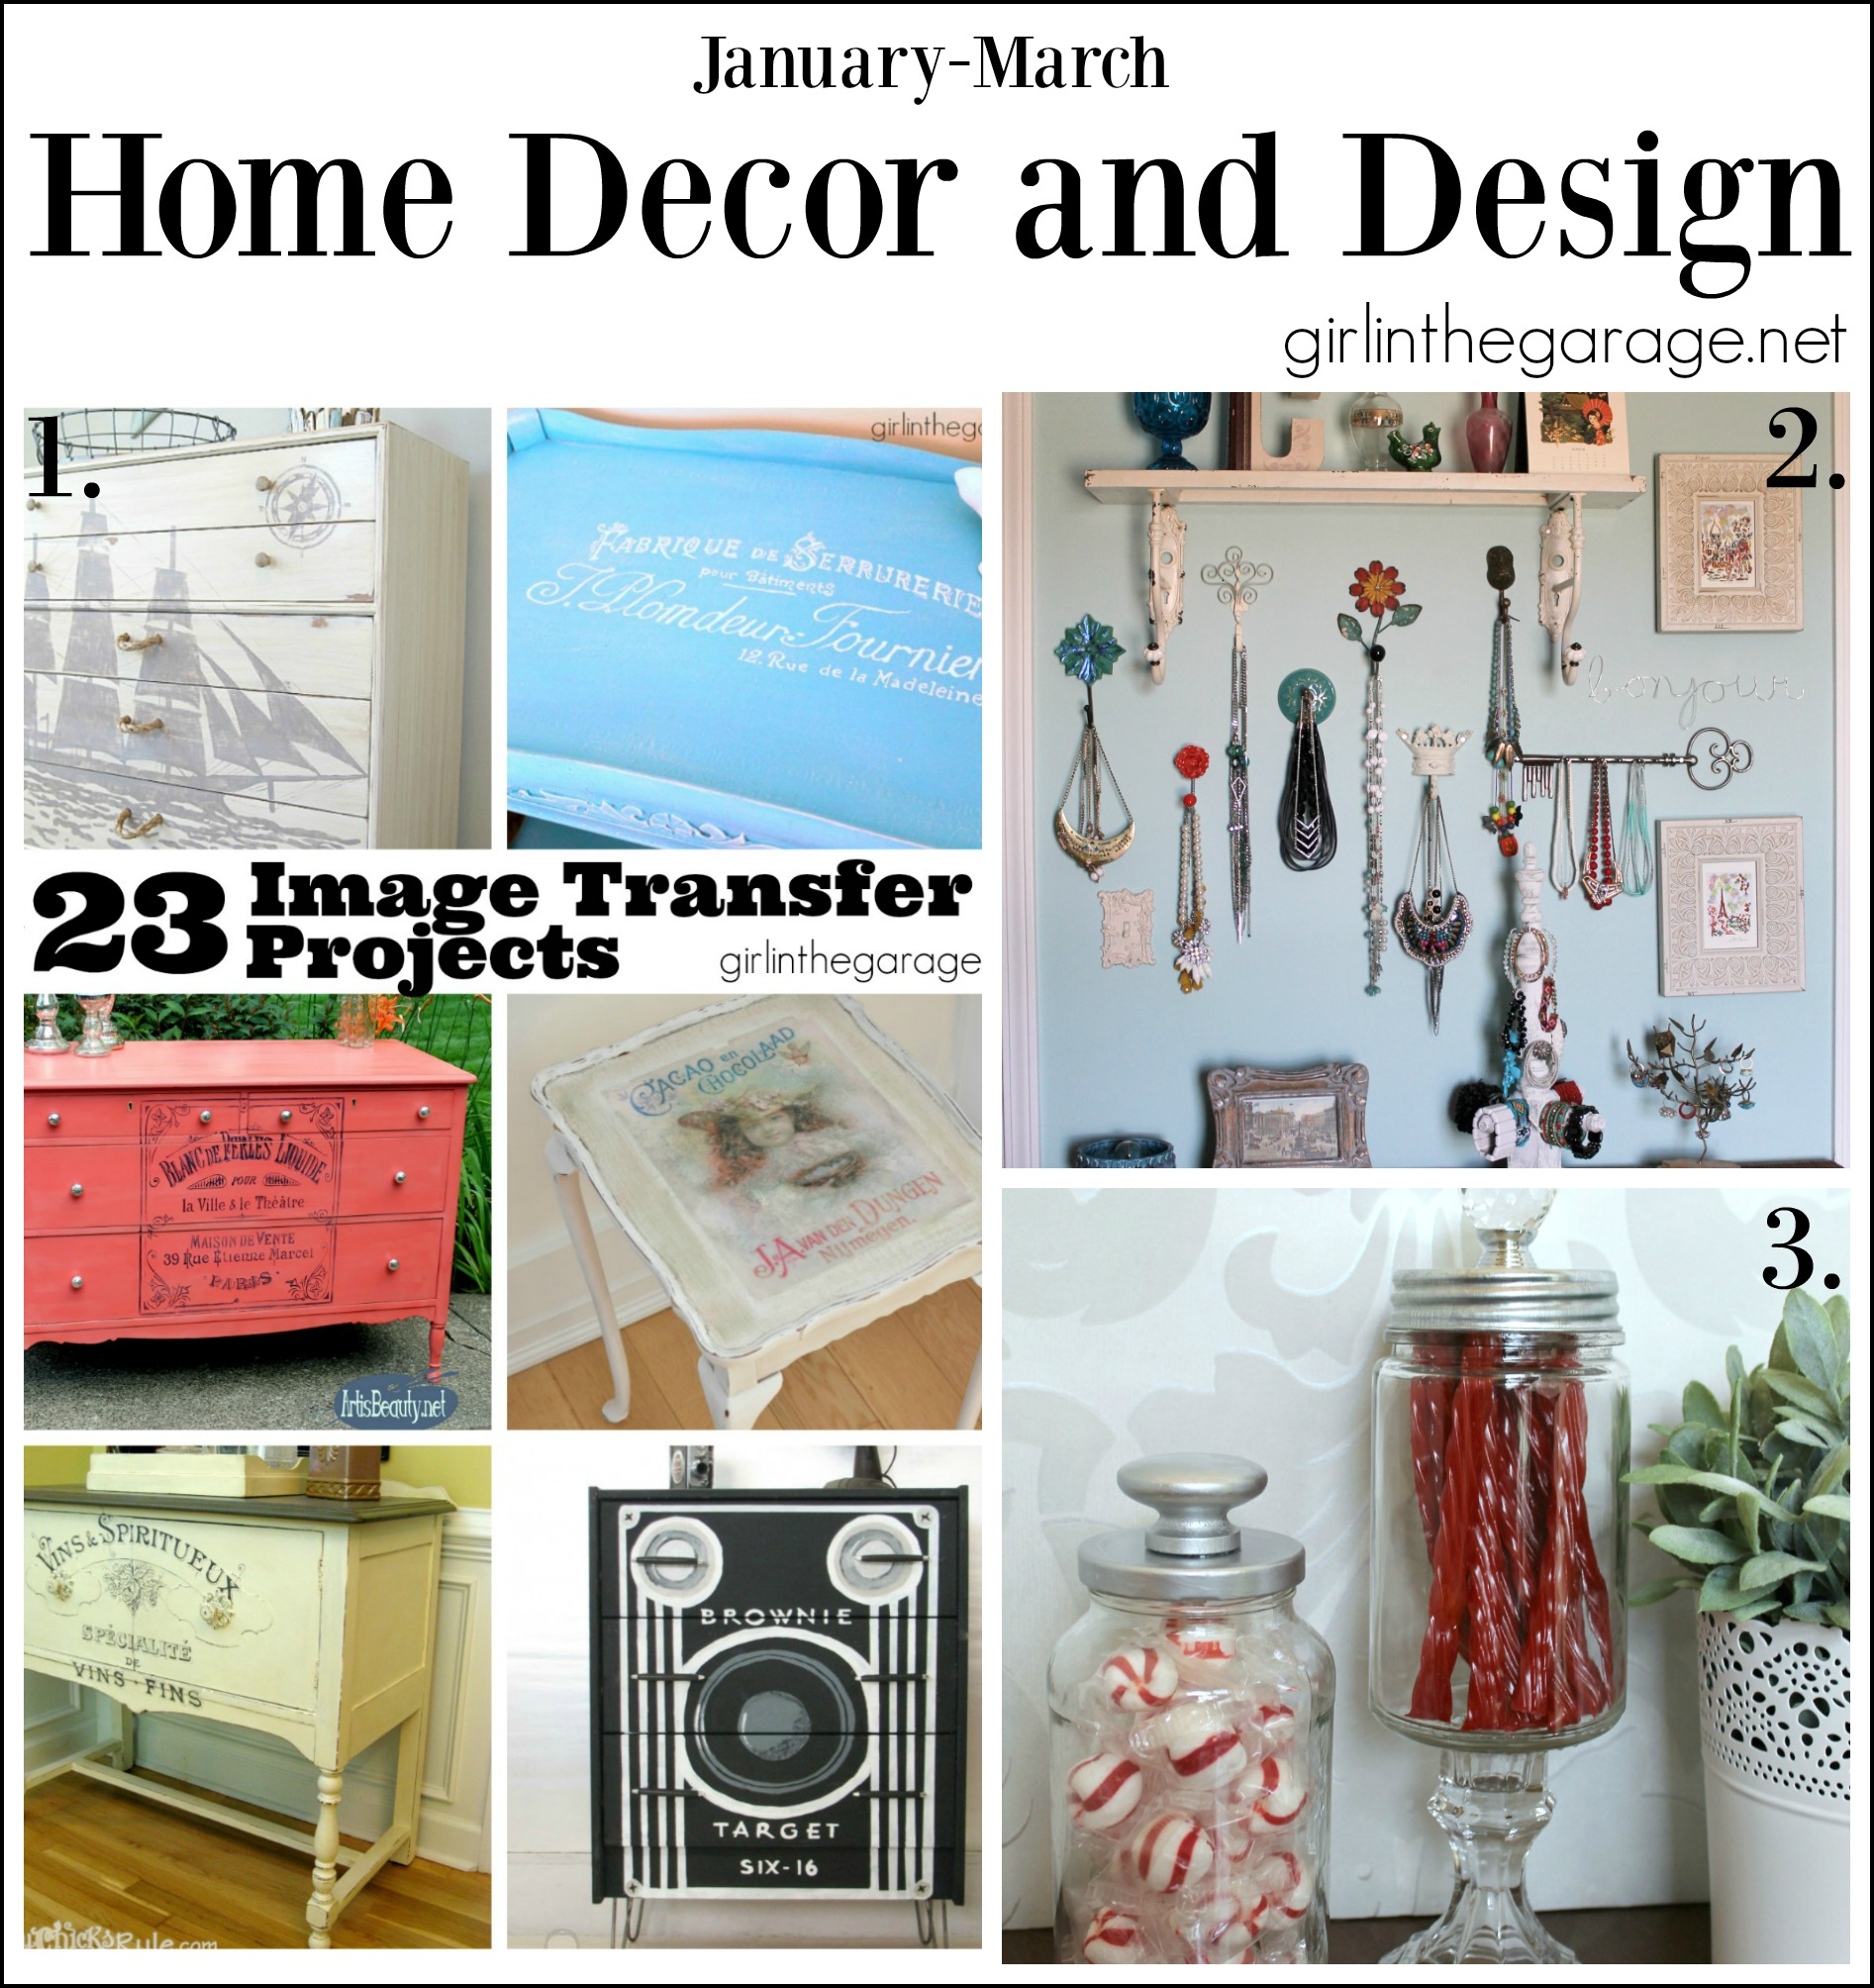 Home Decor and Design Posts - Girl in the Garage